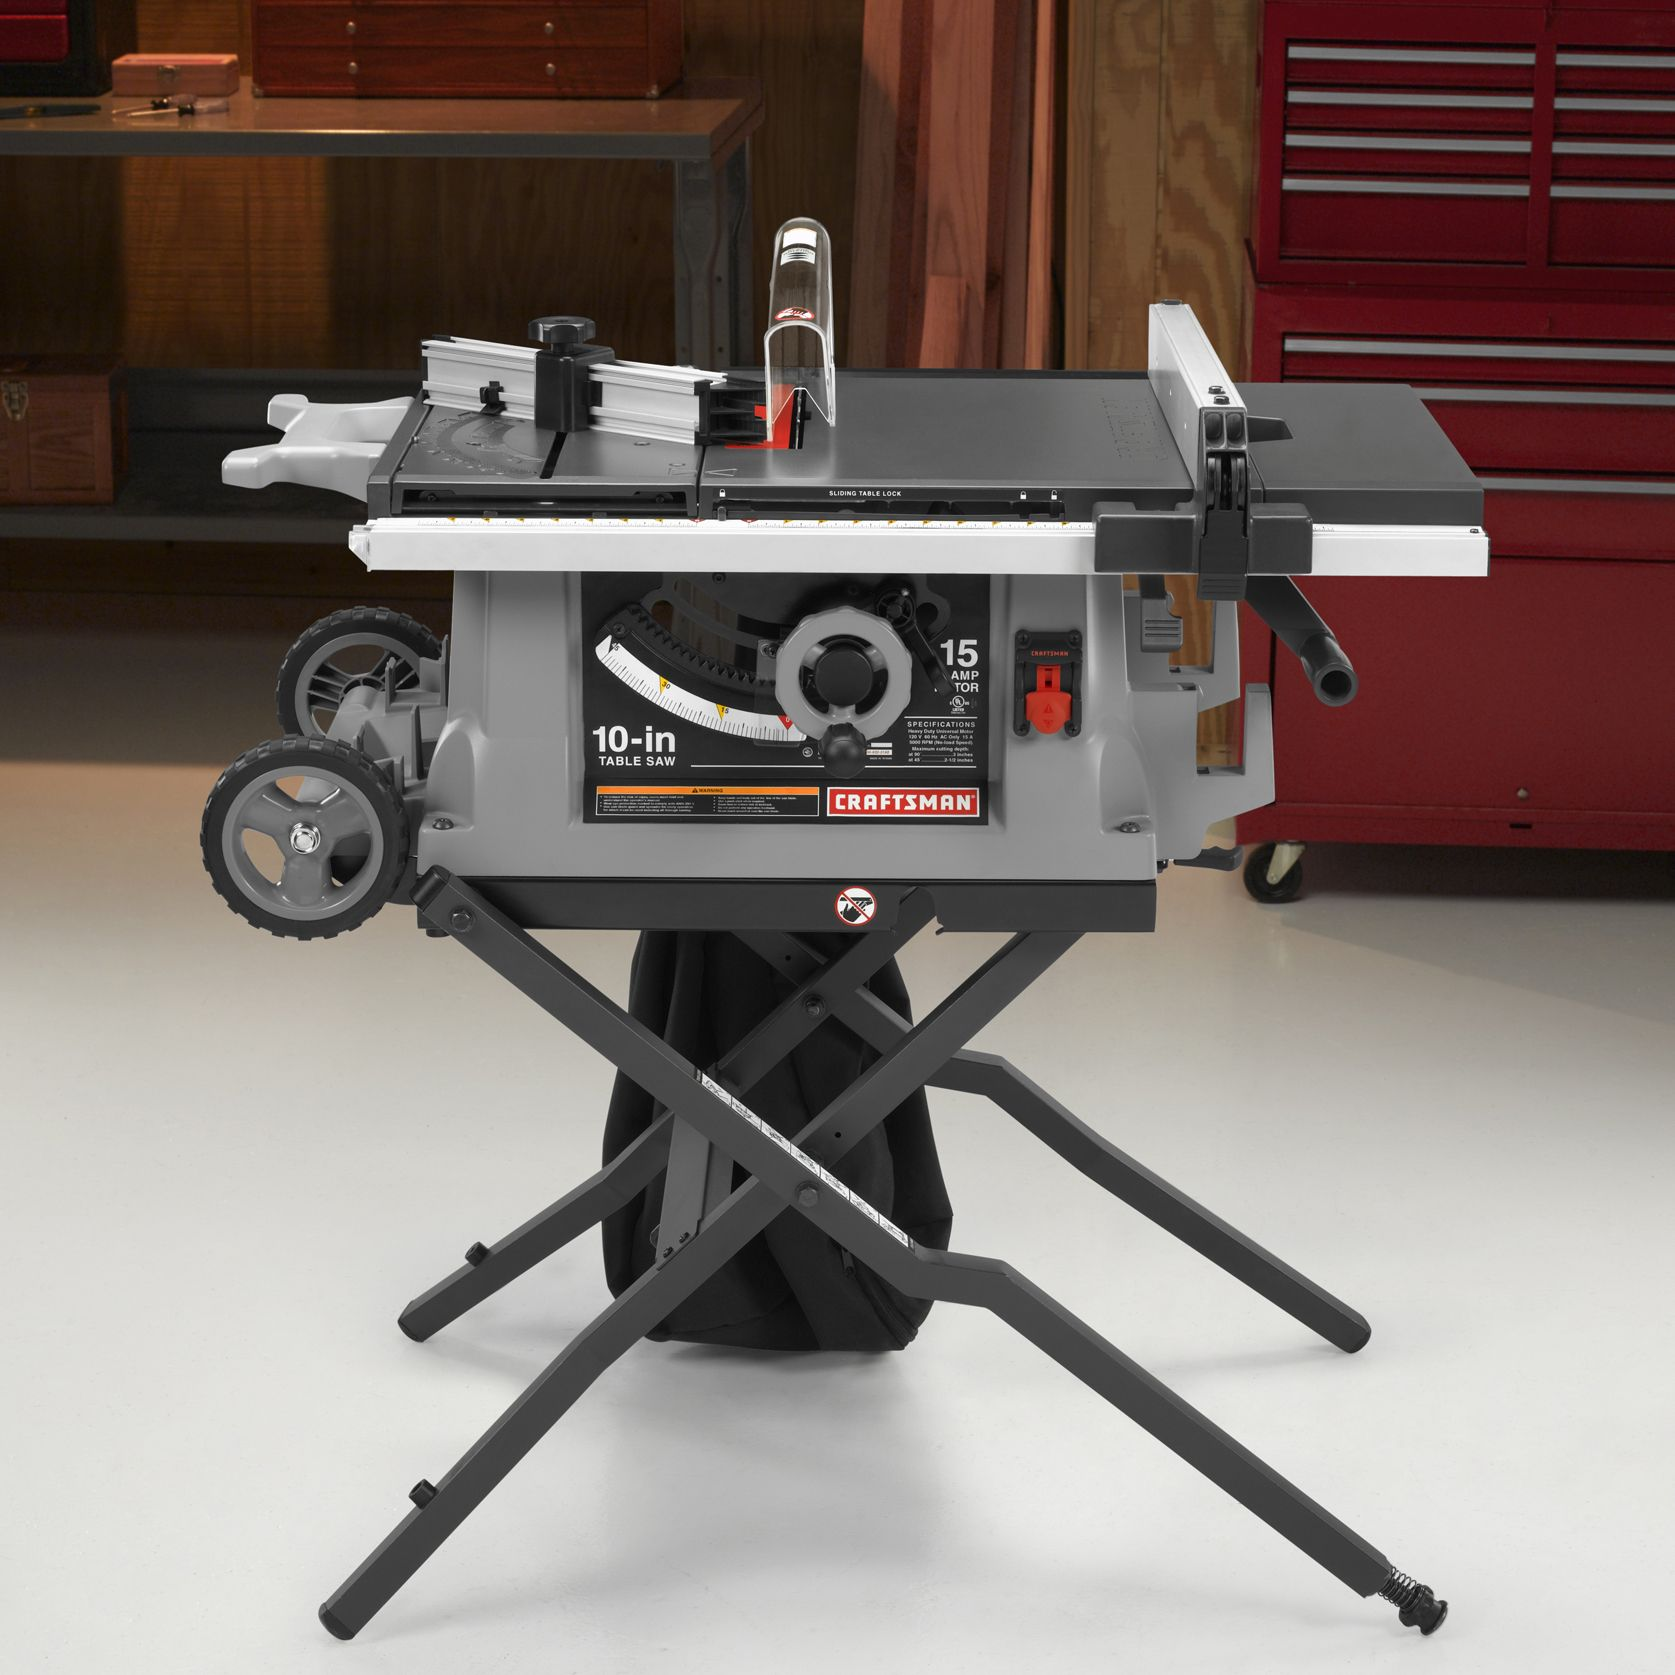 spin prod 242069101 wid 200 hei 250 craftsman table saw parts model 315218060 [ 1675 x 1675 Pixel ]